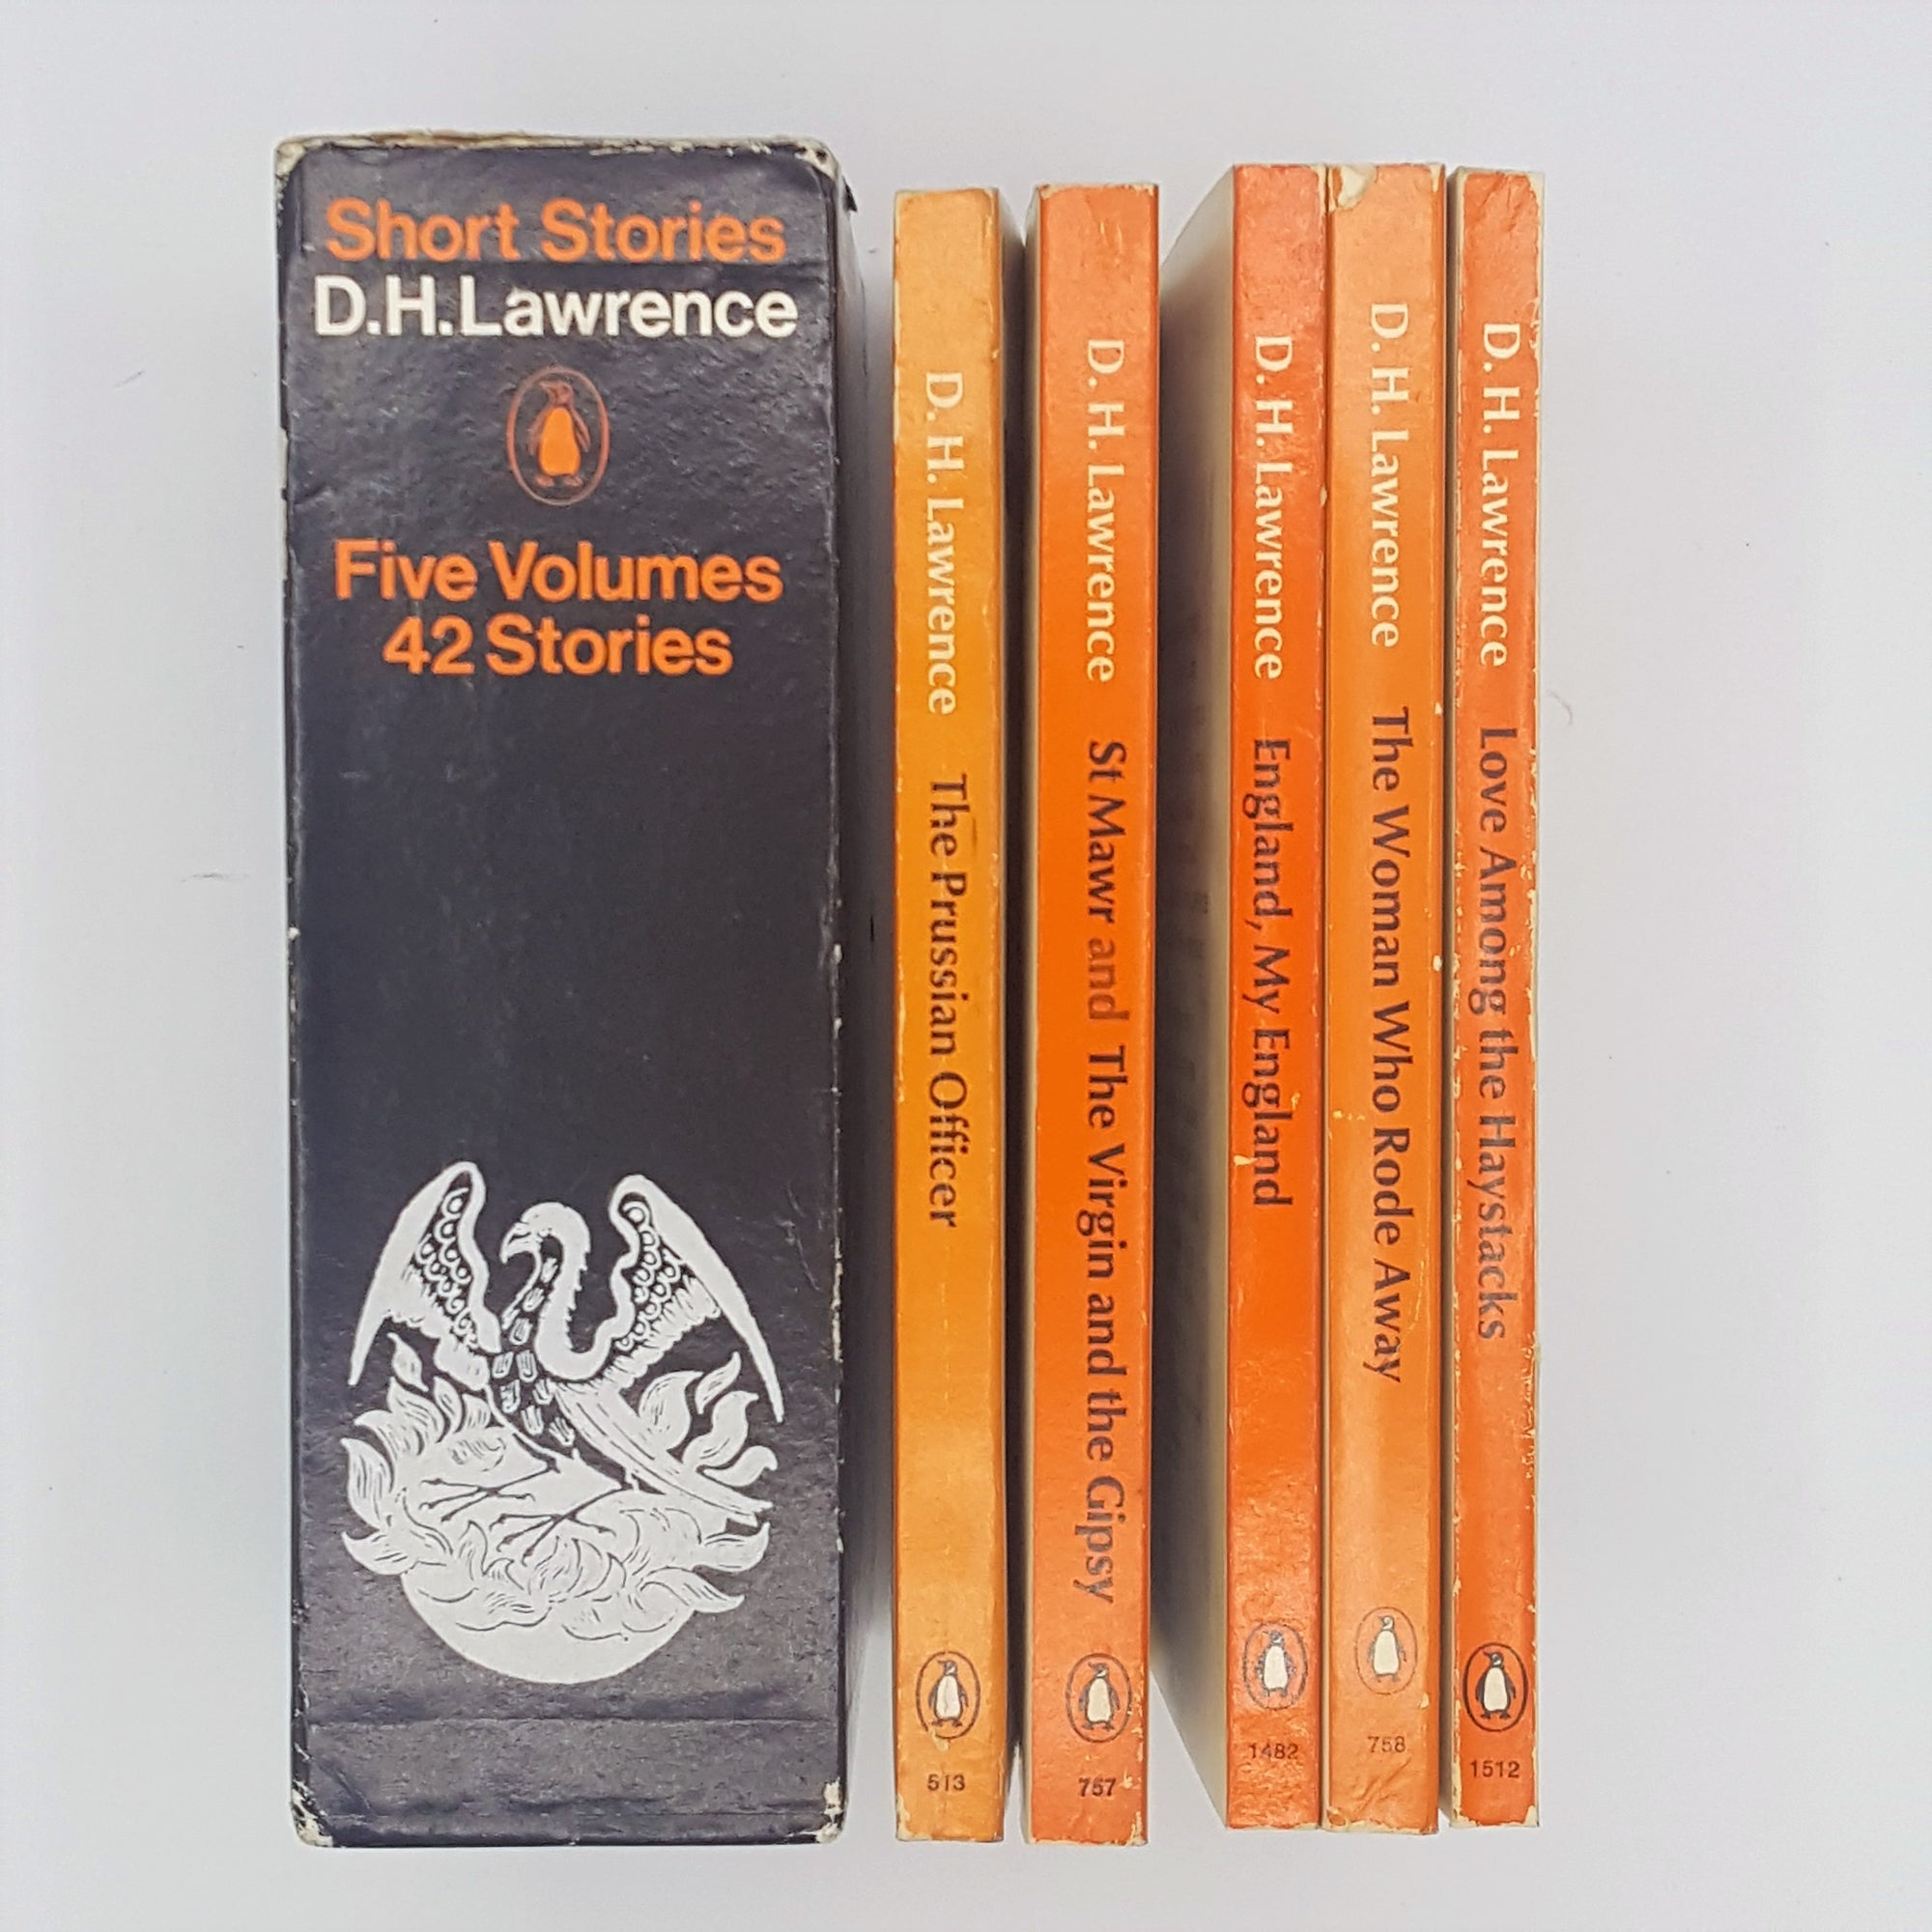 Short Stories Collection by D. H. Lawrence - Five Book Box Set 1968